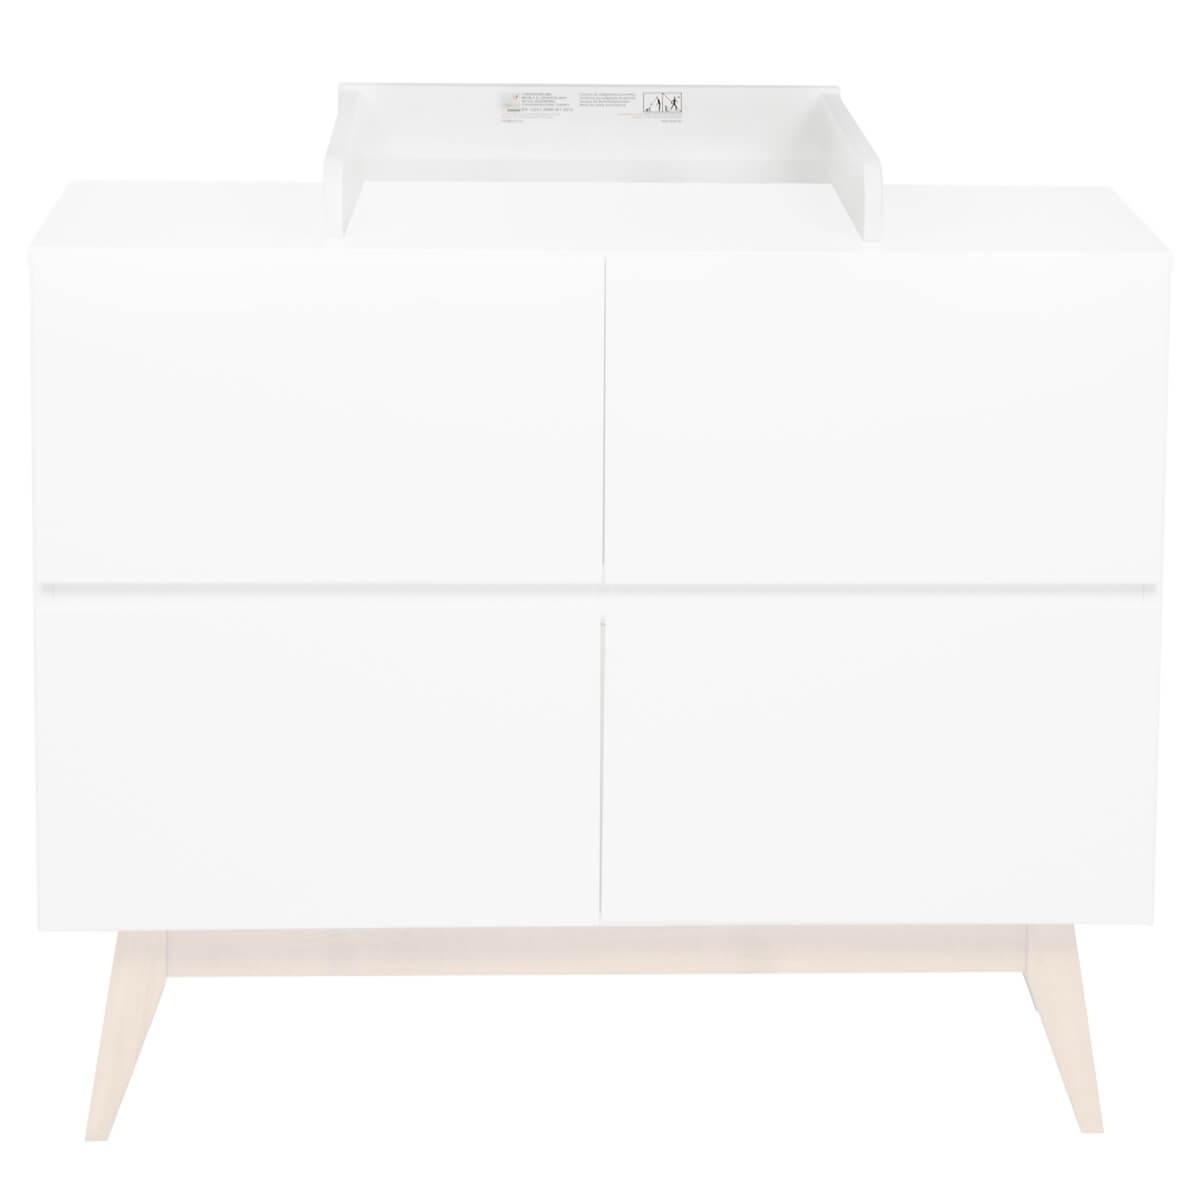 Plan à langer commode TRENDY Quax blanc